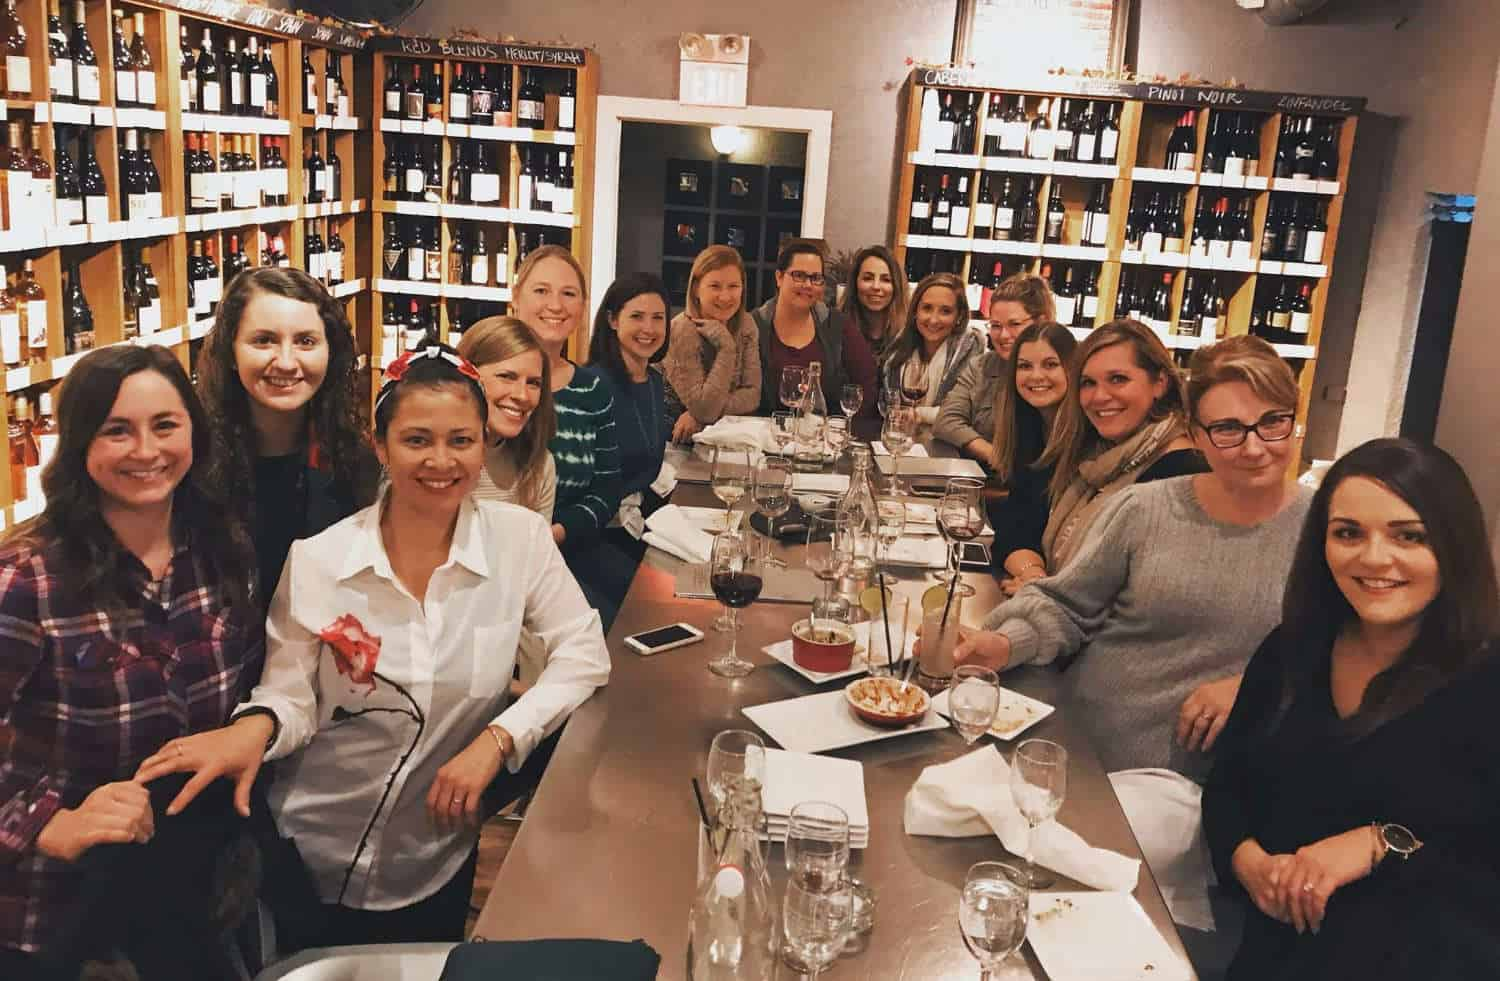 Photo of EAM members at Tannins Wine